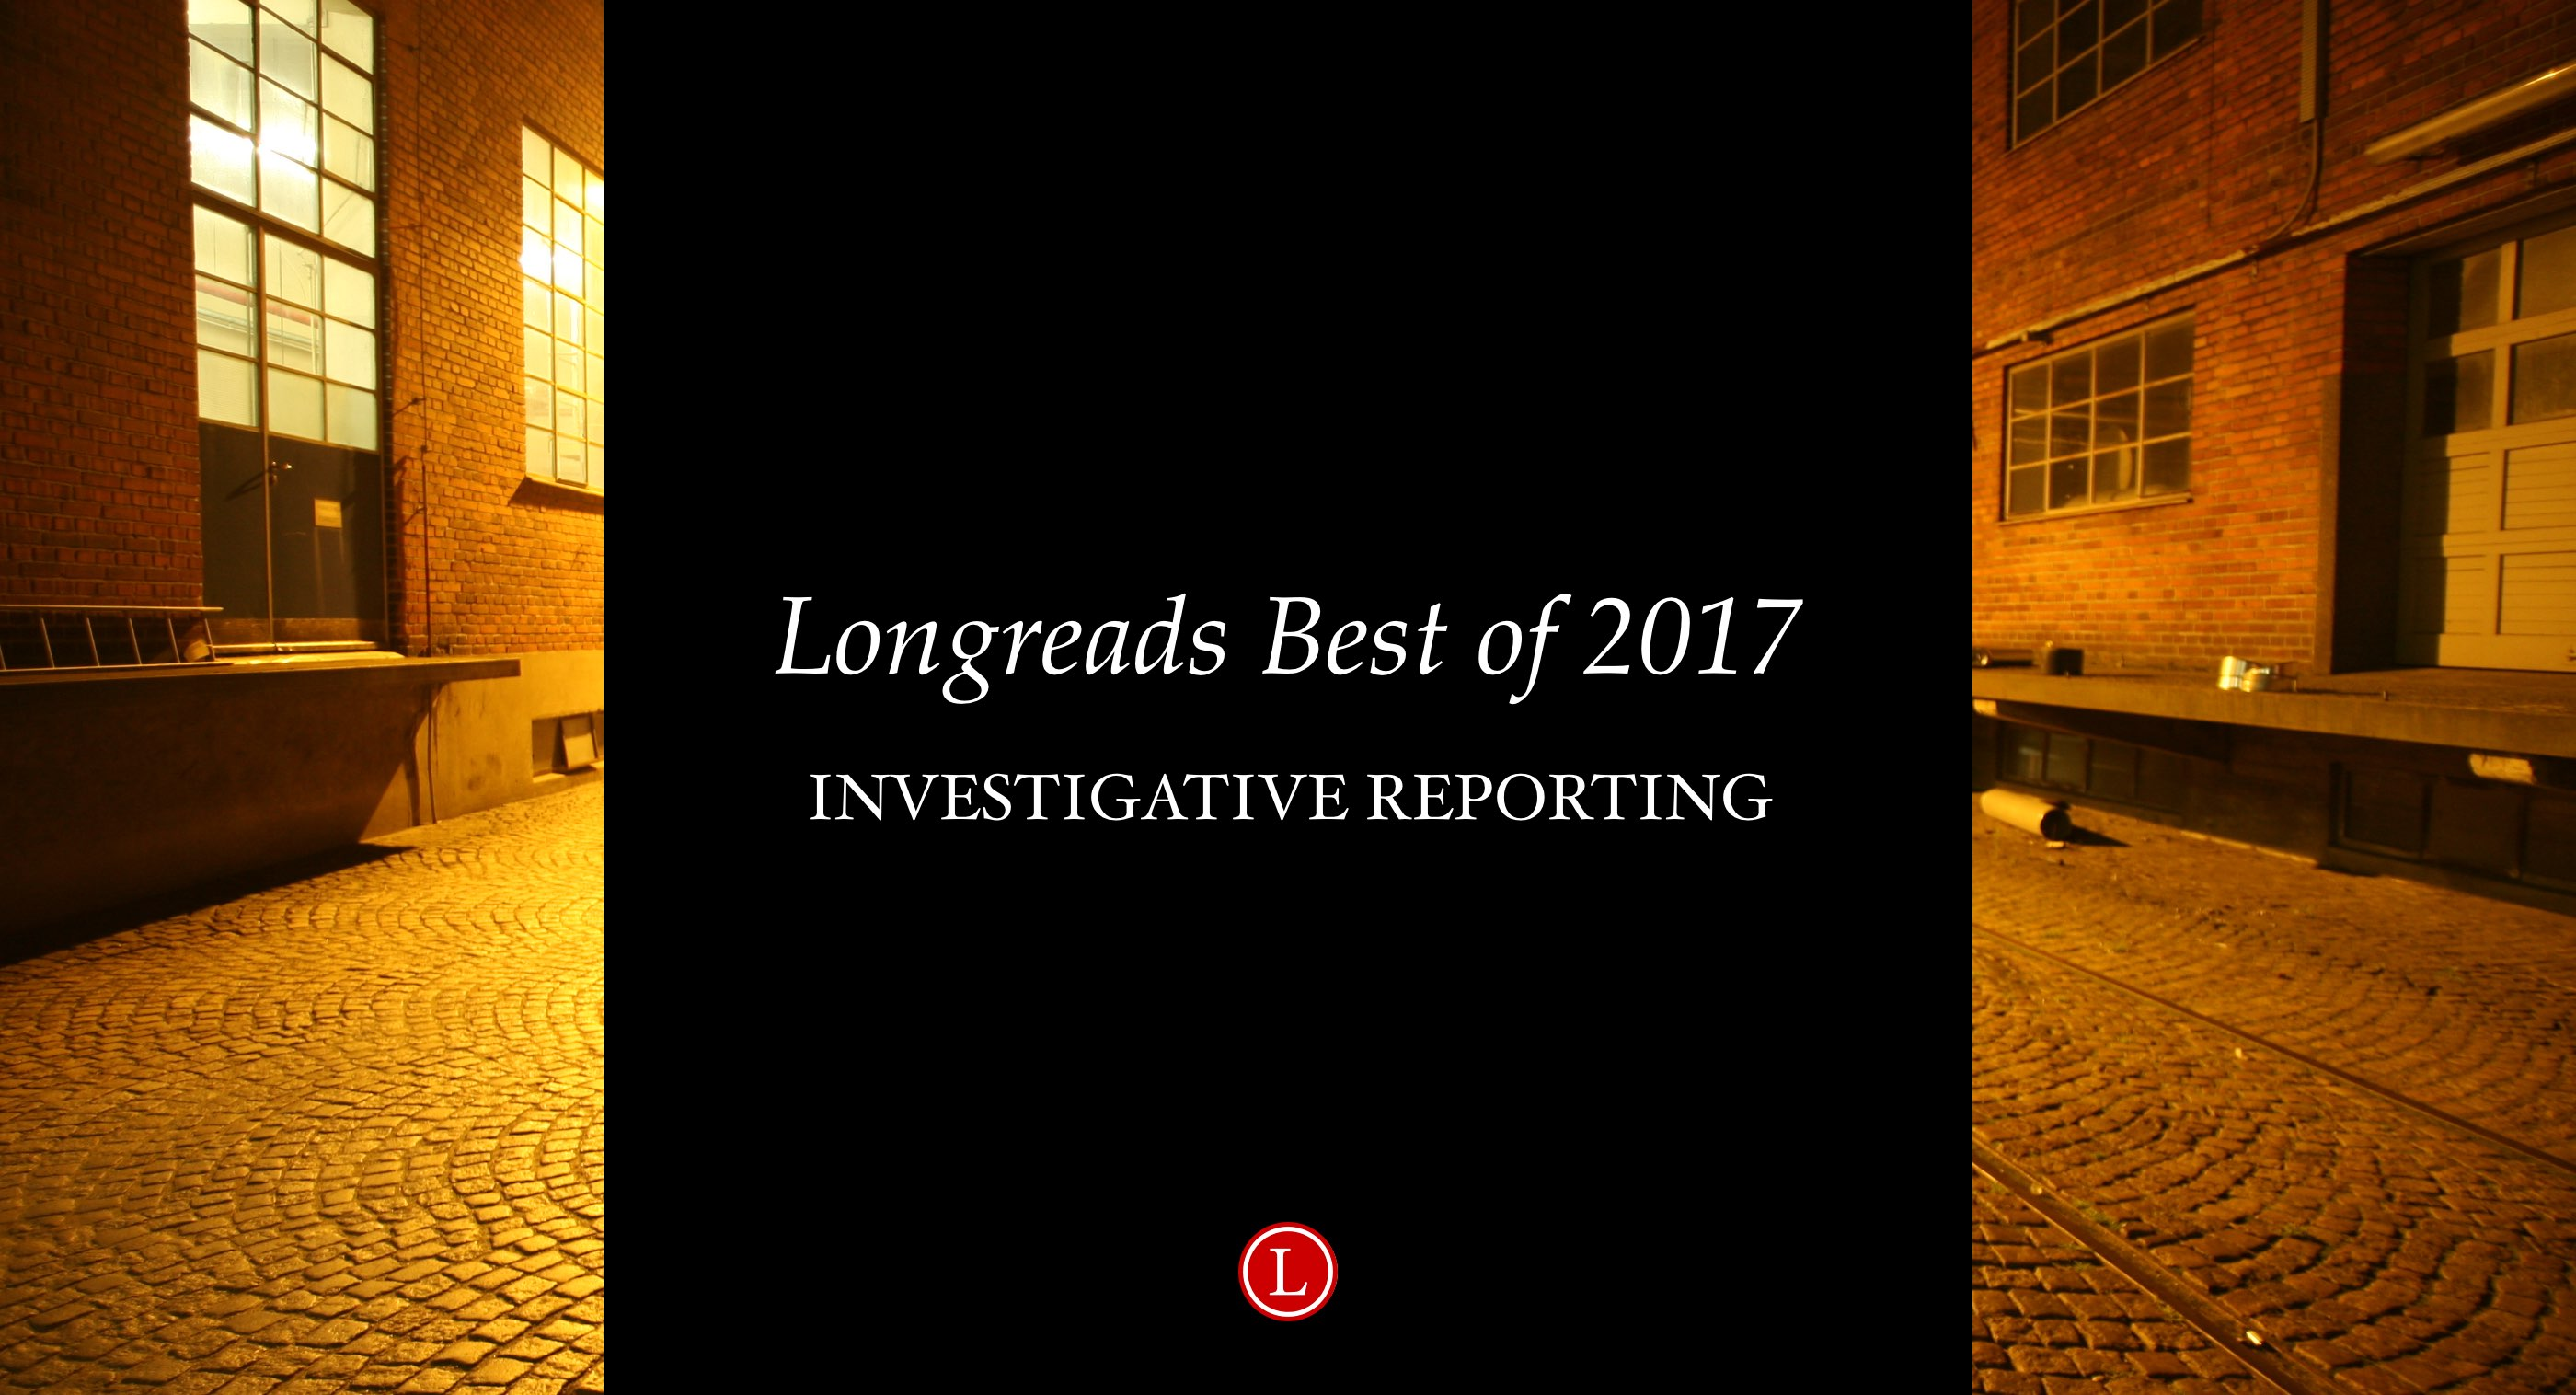 Longreads Best of 2017: Investigative Reporting